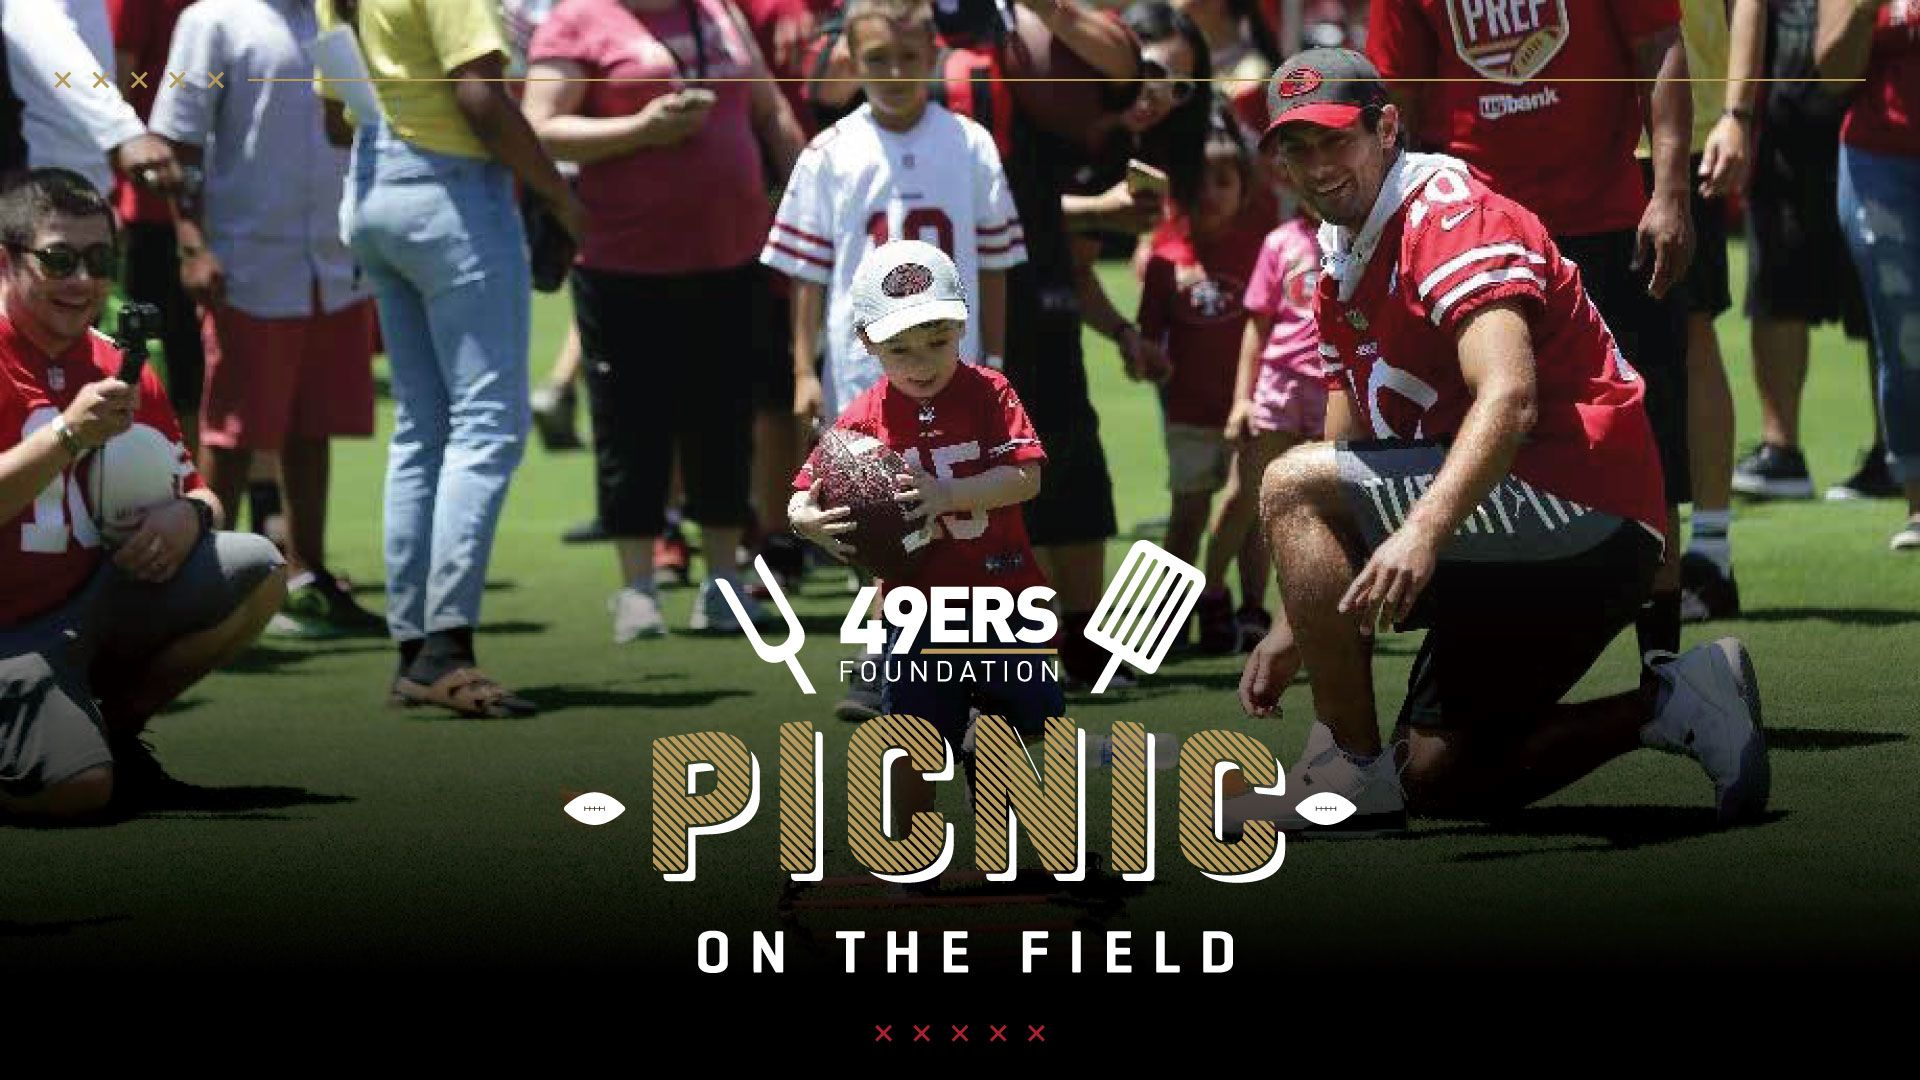 Picnic on the Field